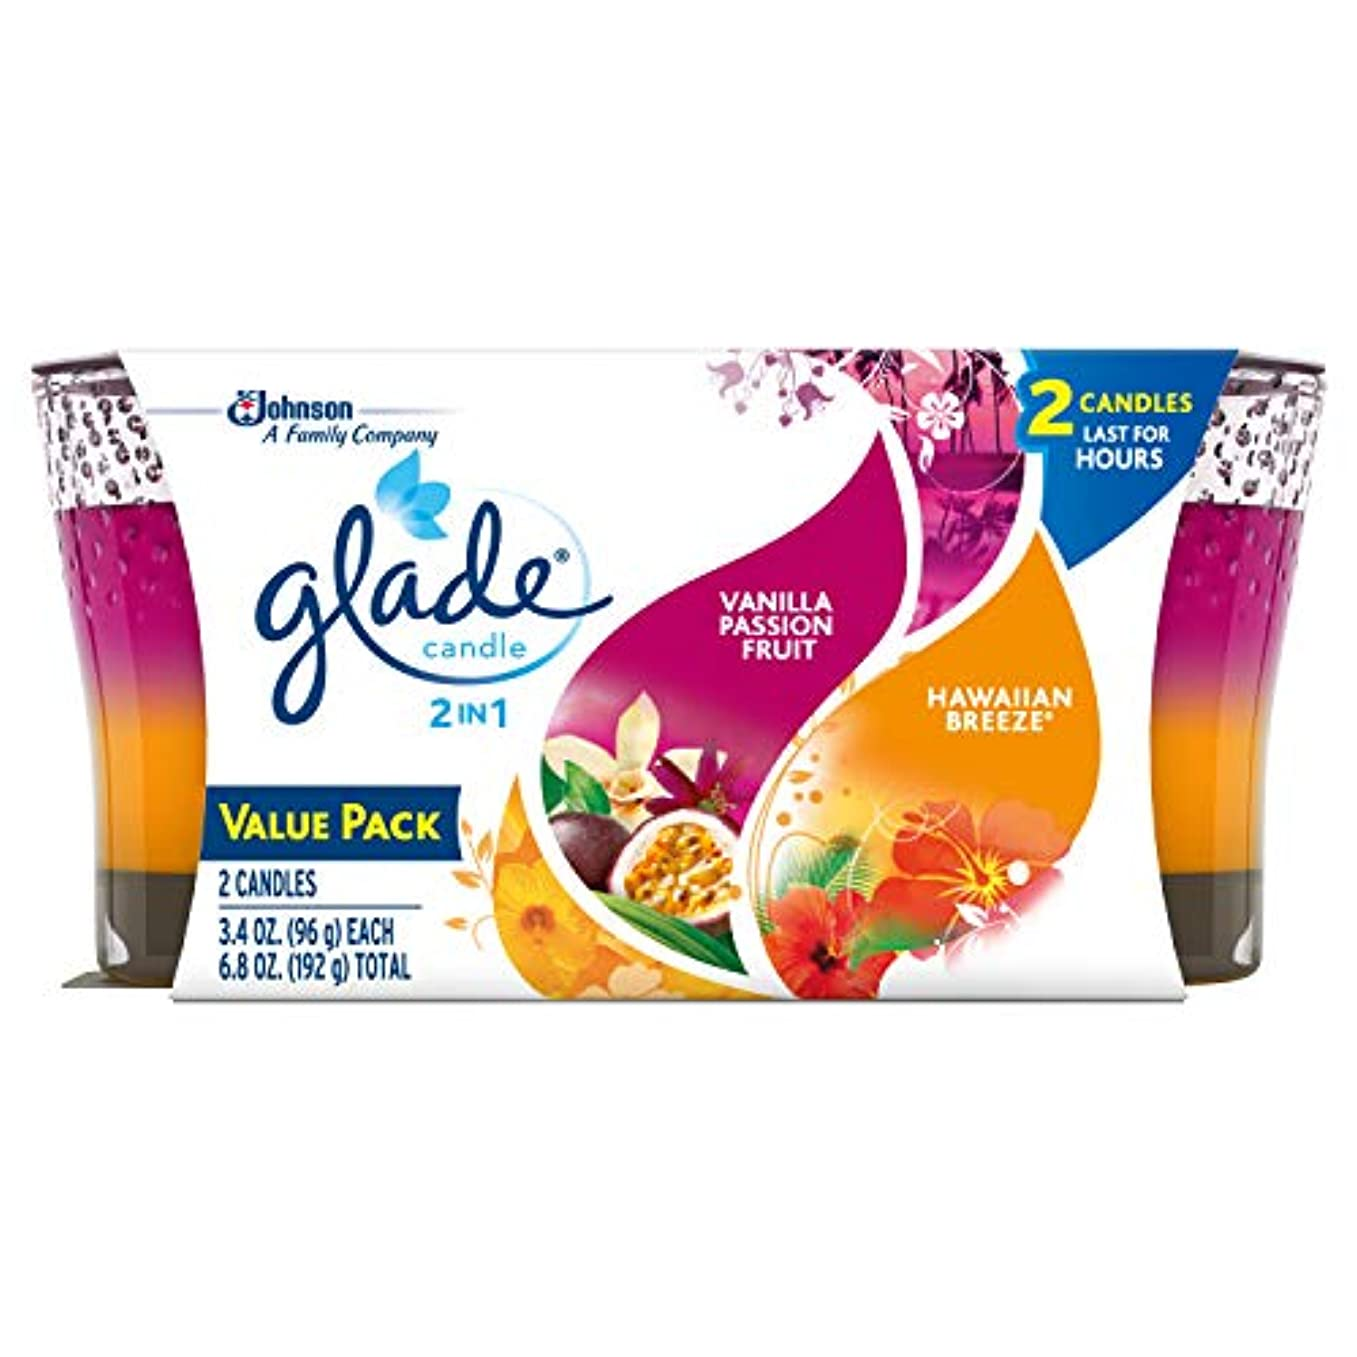 貫通する勝者バーターGlade 2in1 Jar Candle Air Freshener, Hawaiian Breeze and Vanilla Passion Fruit, 2 count, 6.8 Ounce by Glade